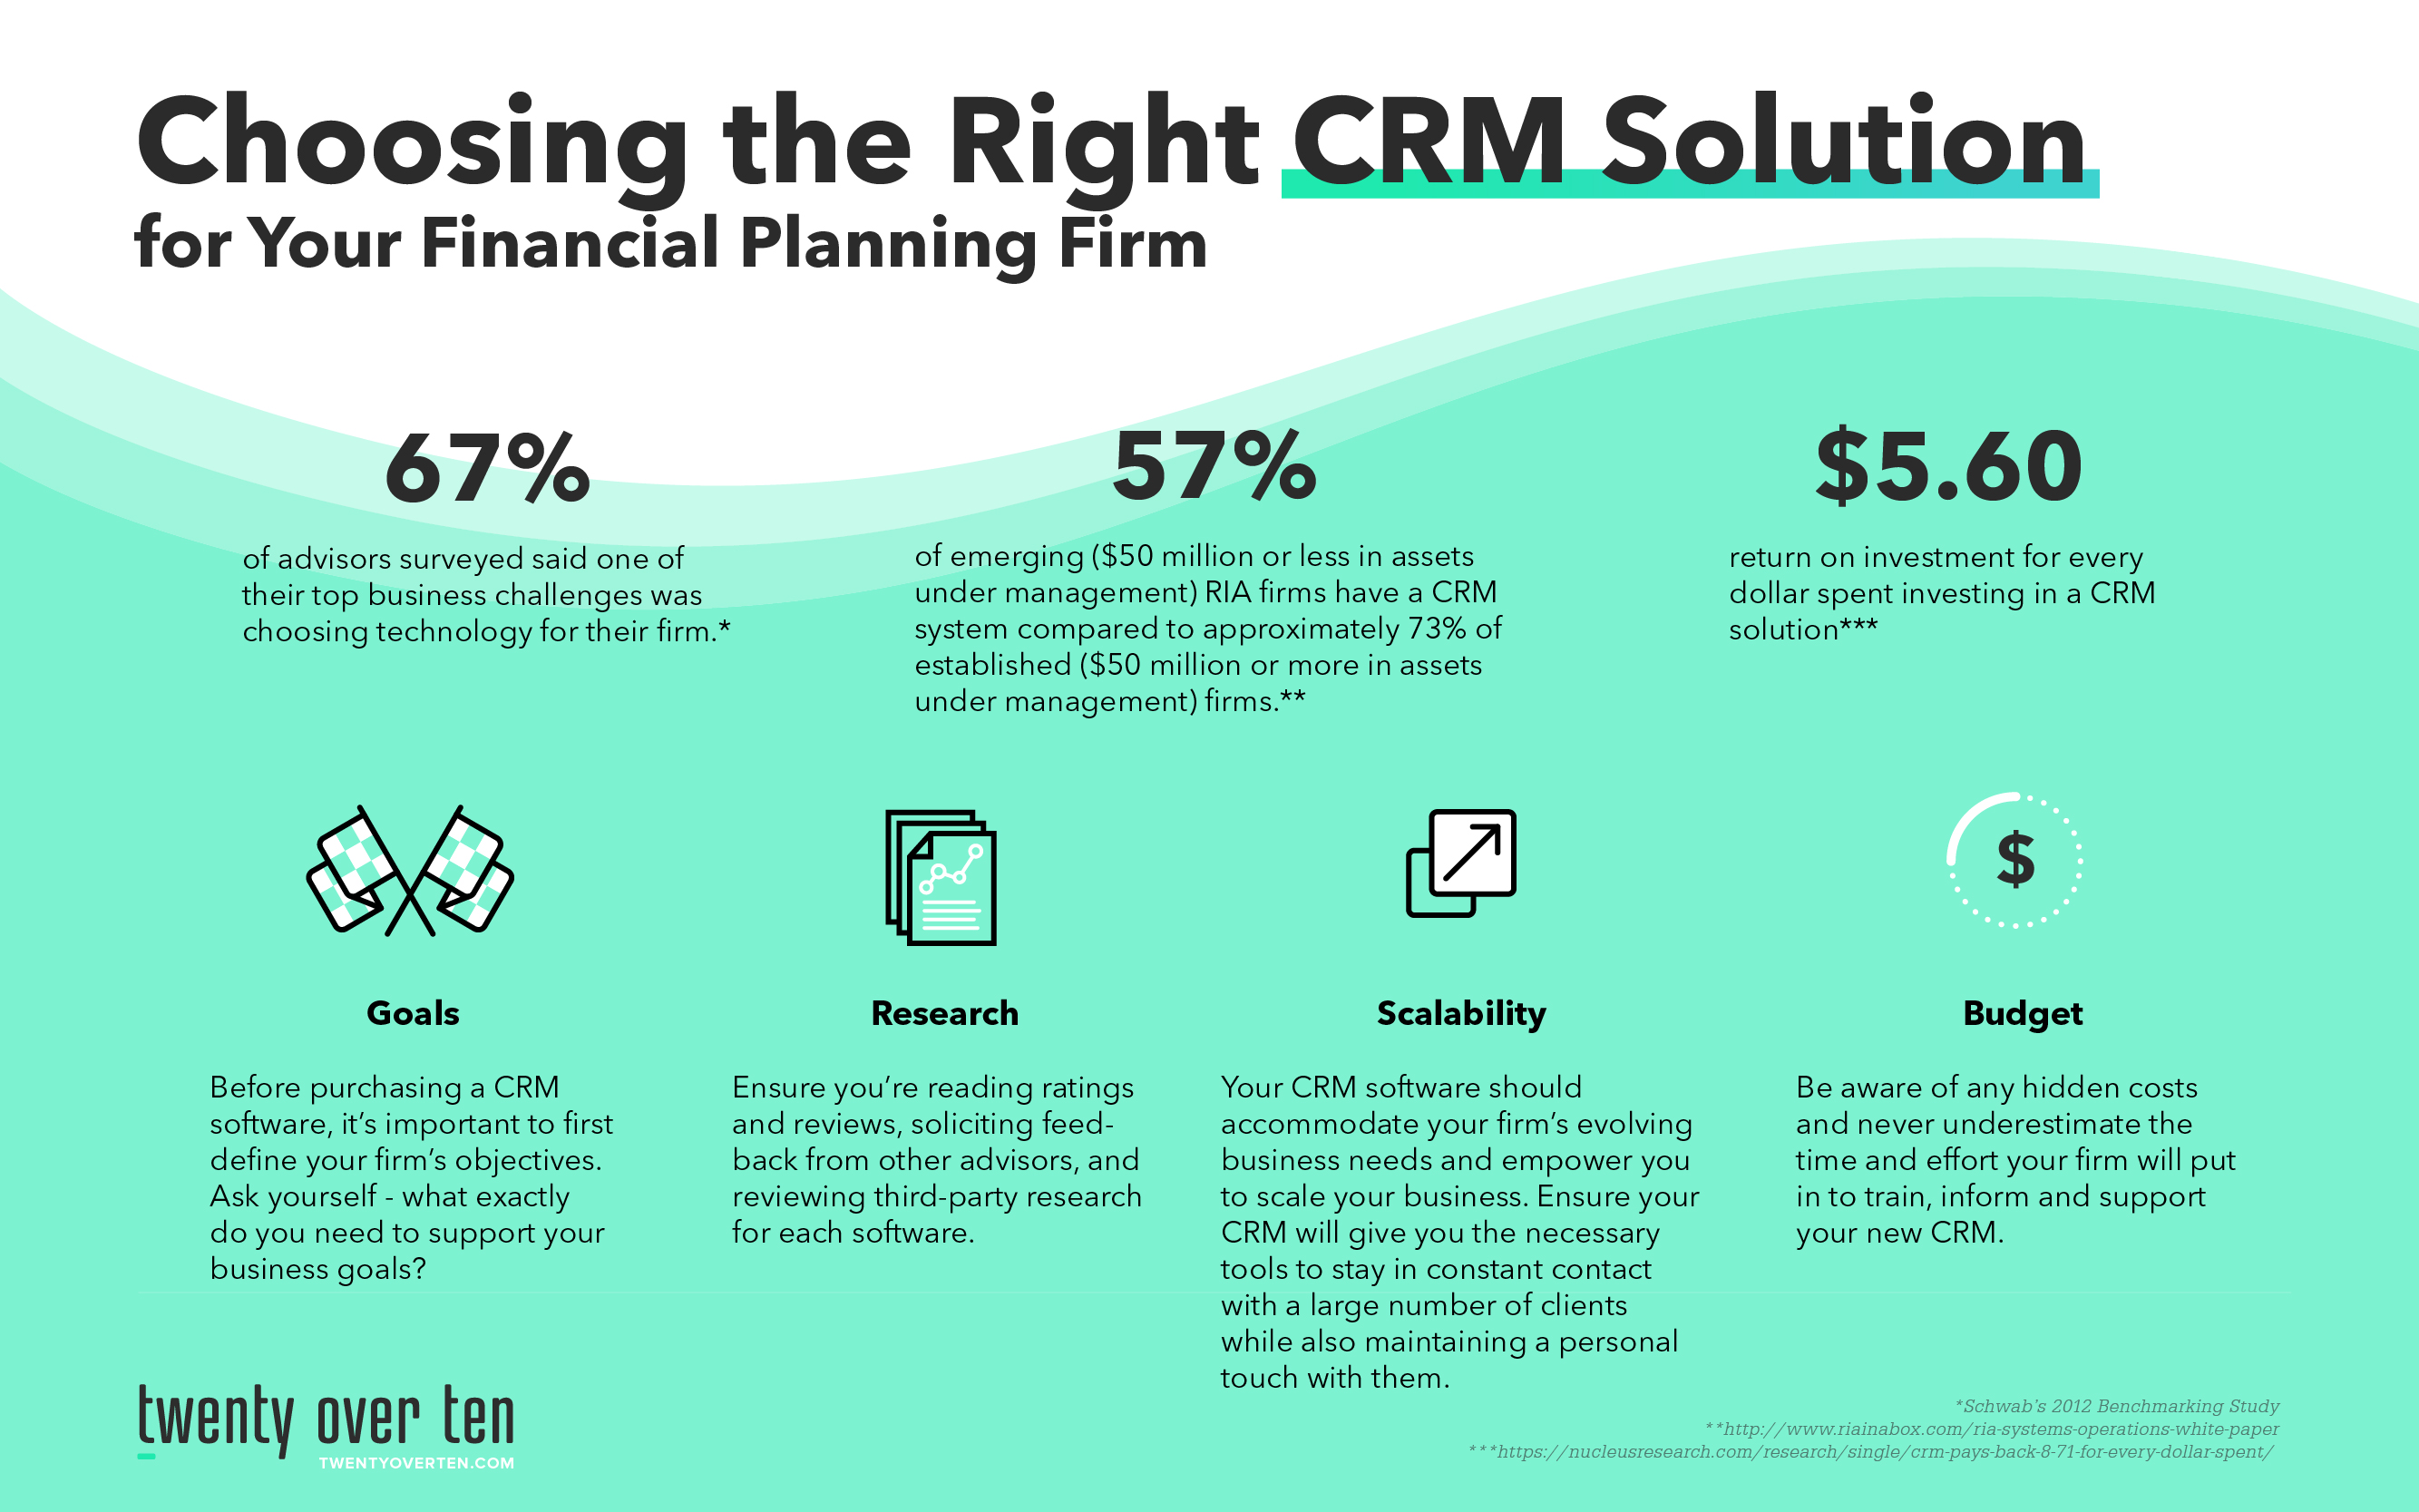 choosing the right crm solution infographic